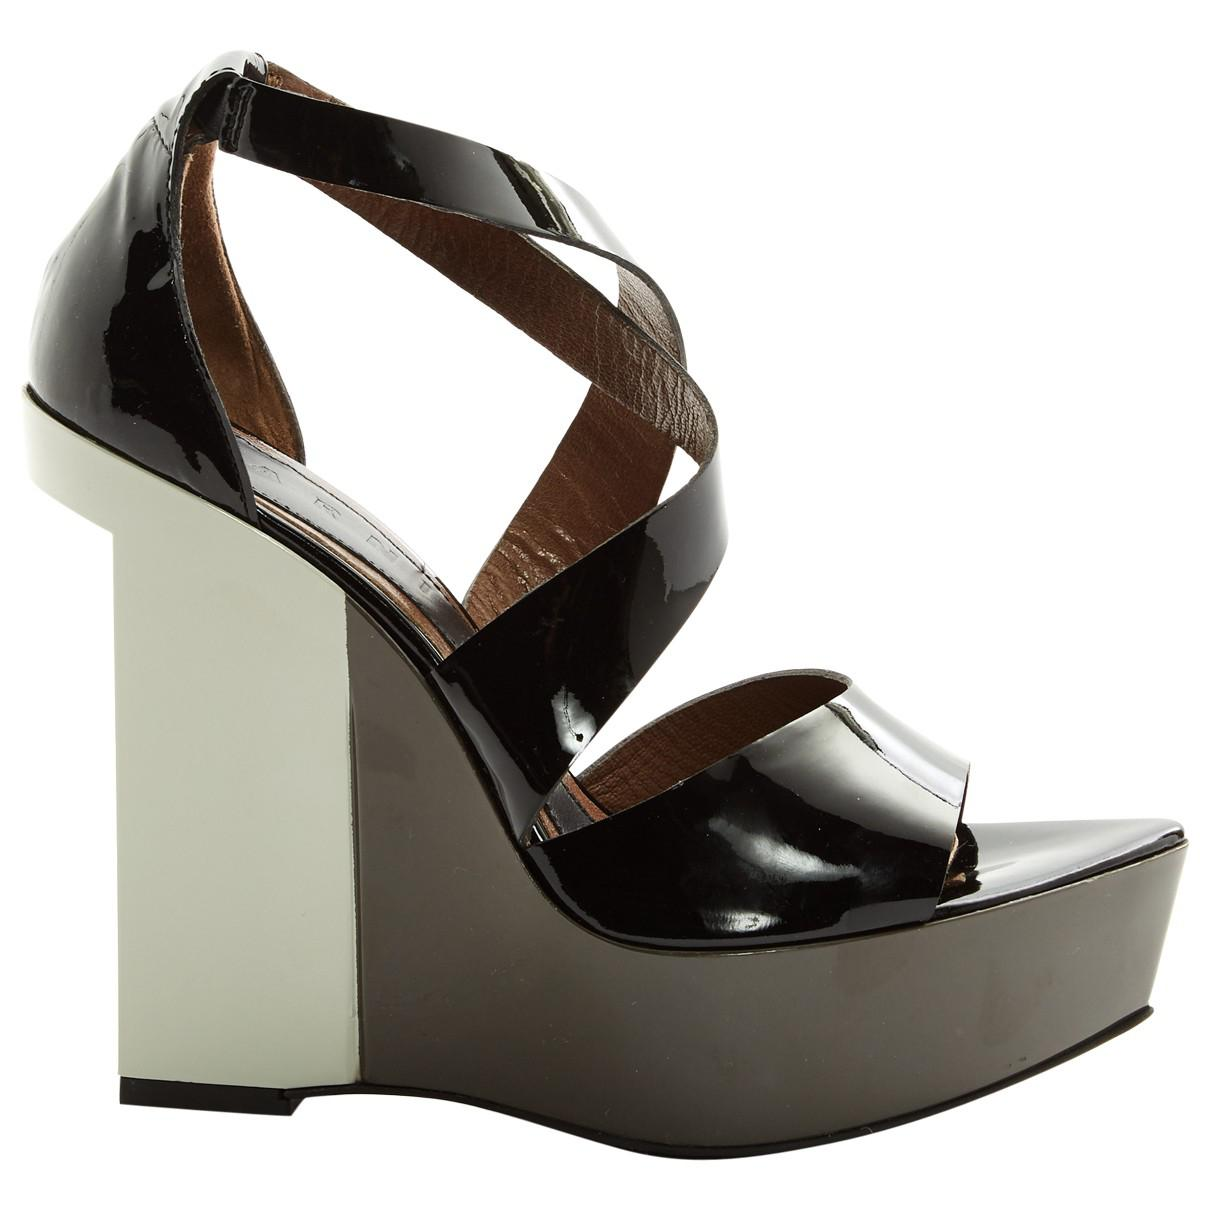 Eastbay Pre-owned - Patent leather sandals Marni Official Site For Sale Sale Classic Outlet Wiki Free Shipping With Mastercard cssPyciHOe